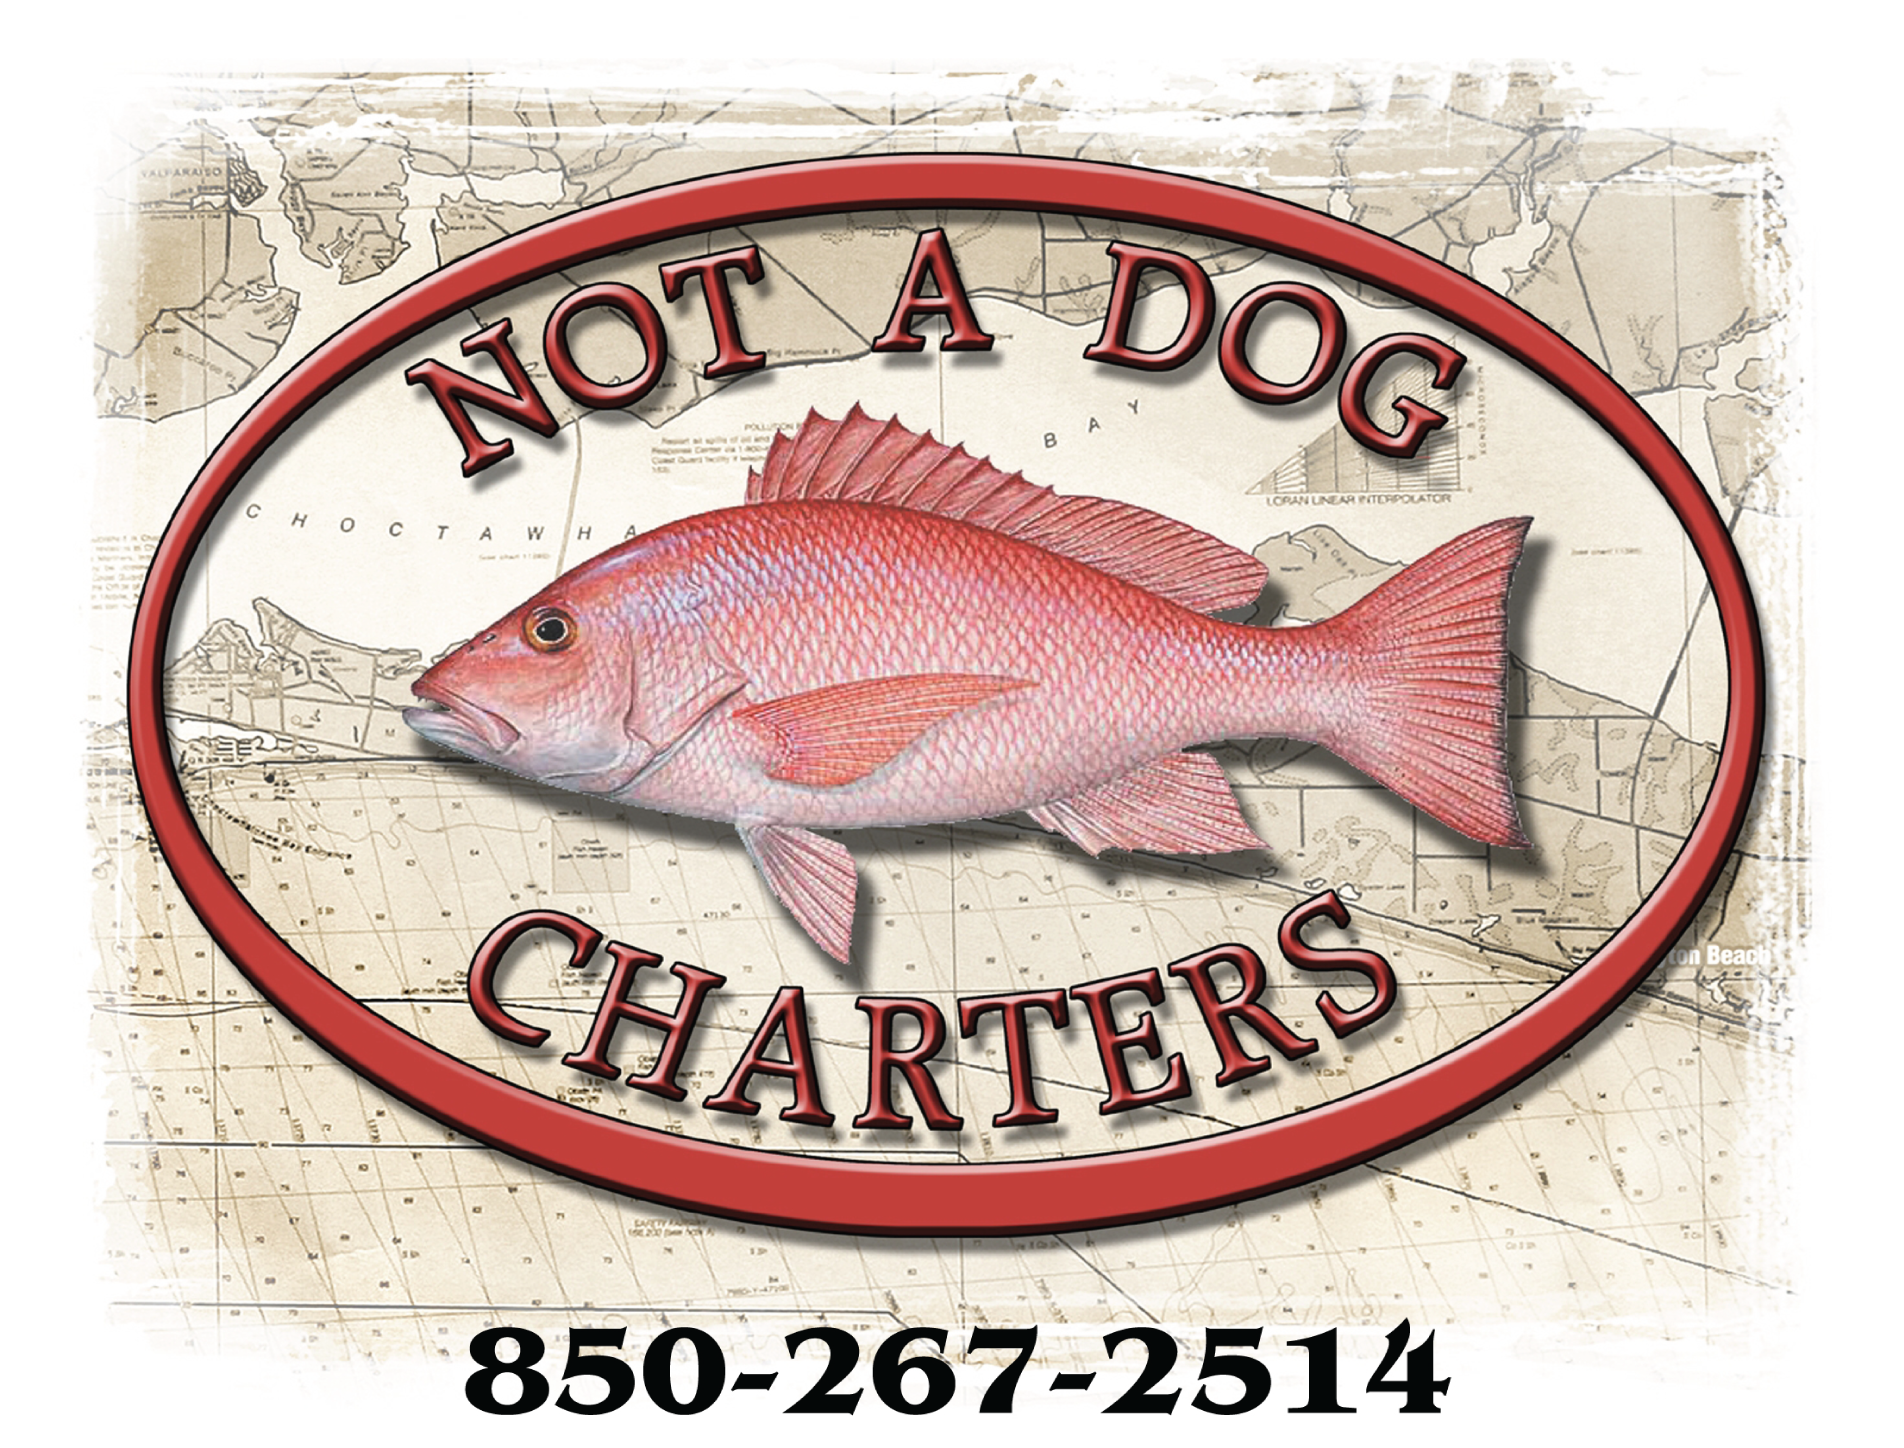 Not a Dog Charters